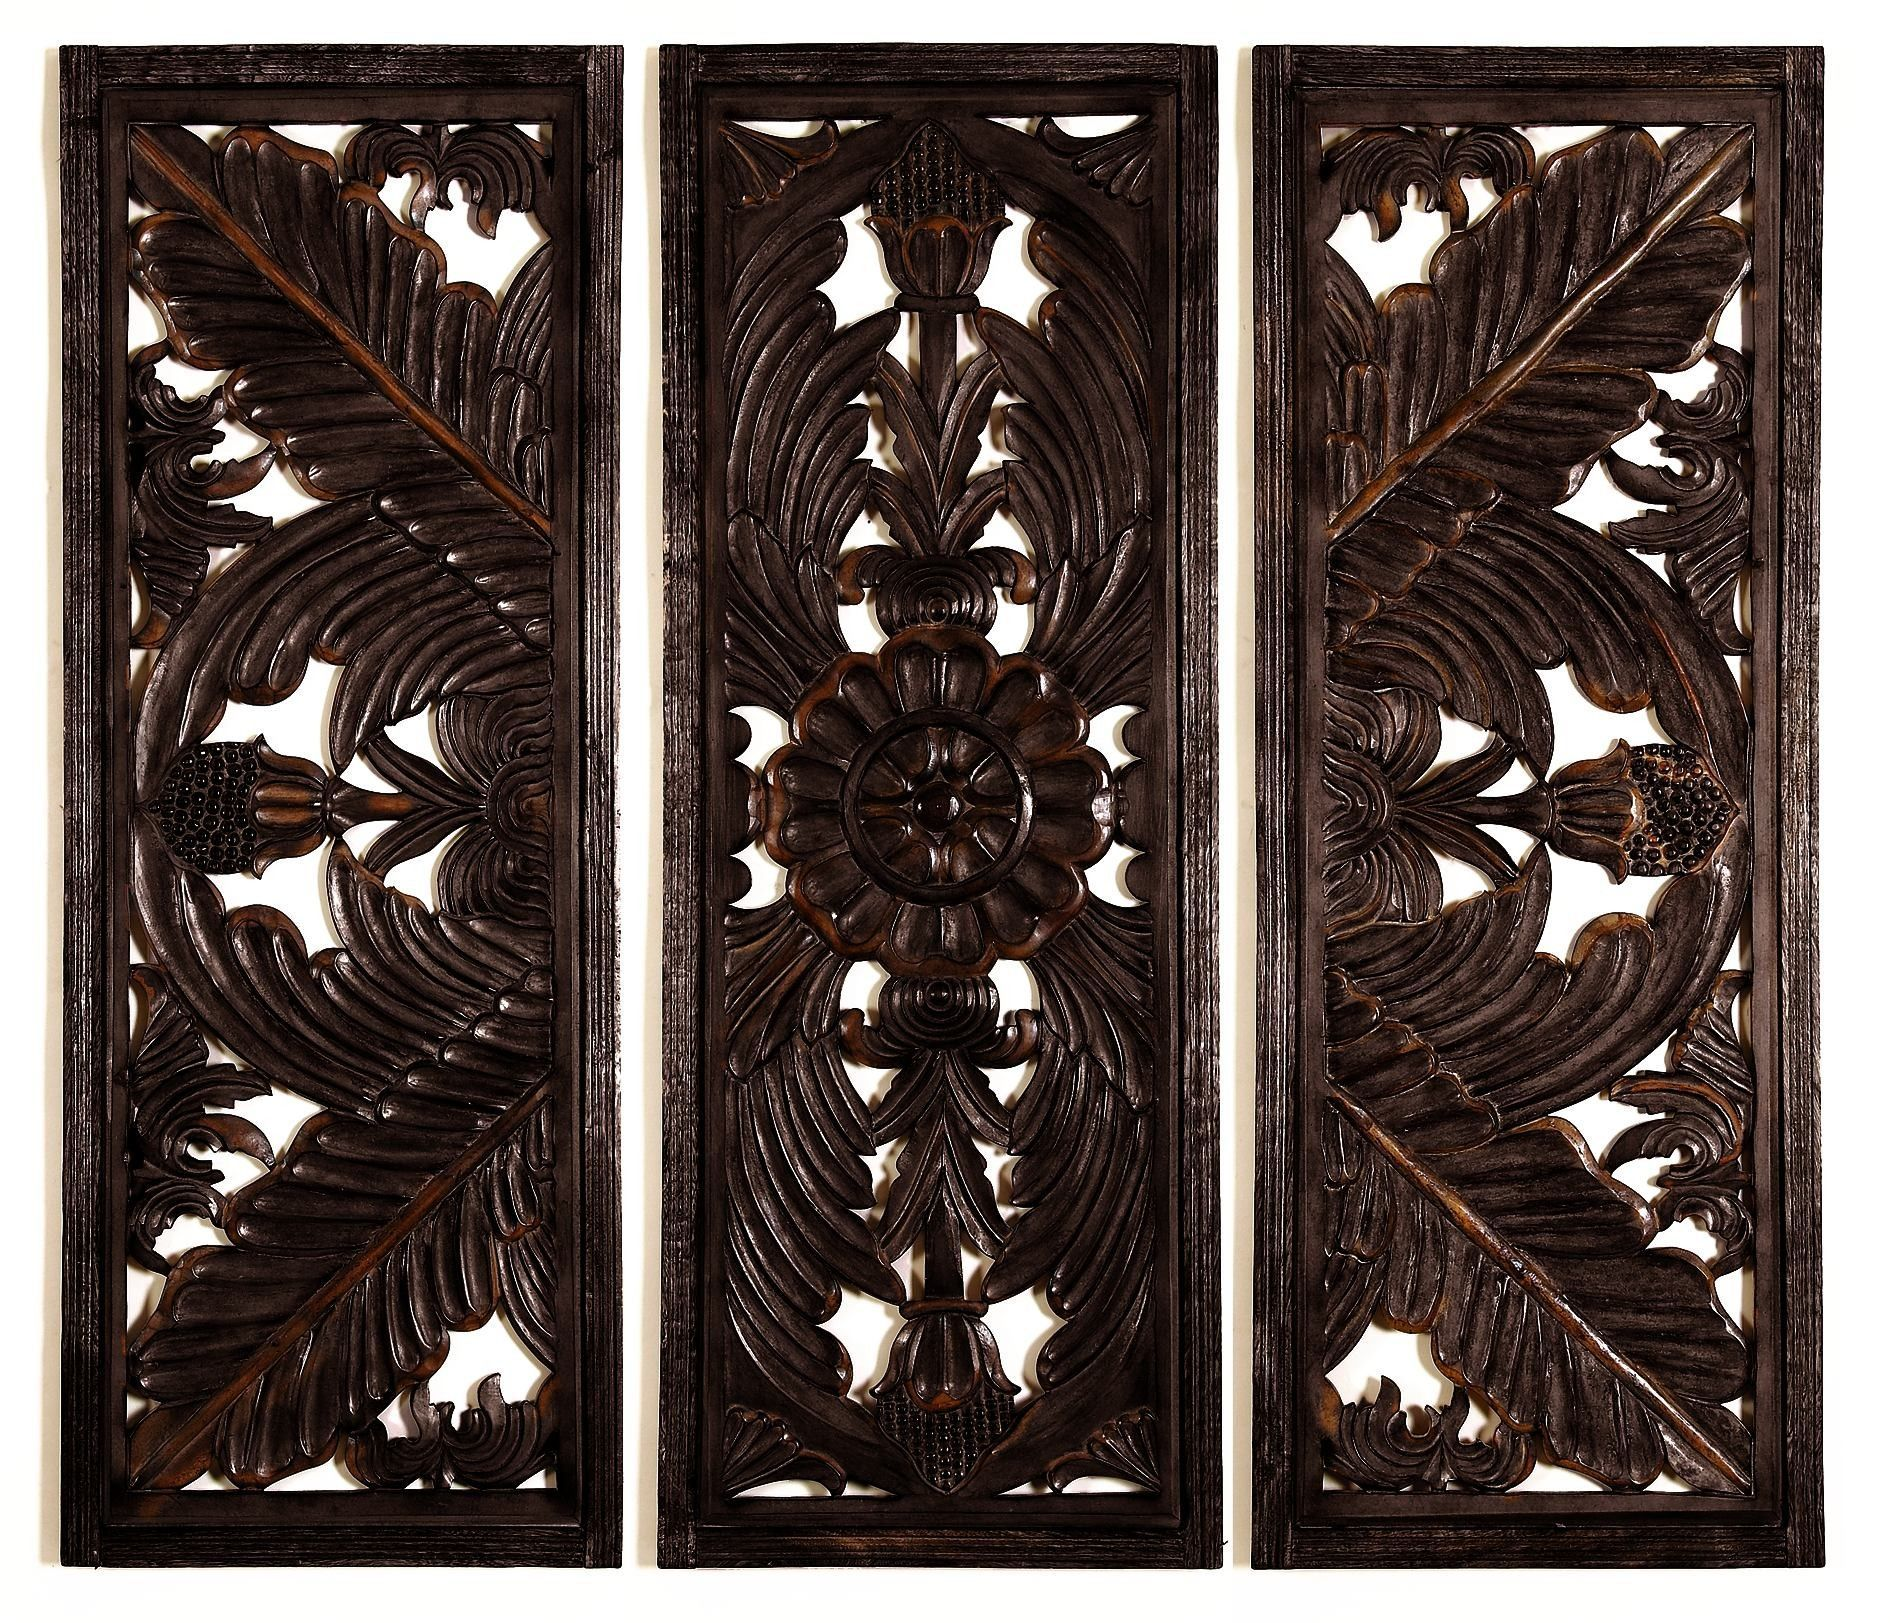 3 Piece Wooden Wall Decor Set Wood Wall Plaques Wooden Wall Panels